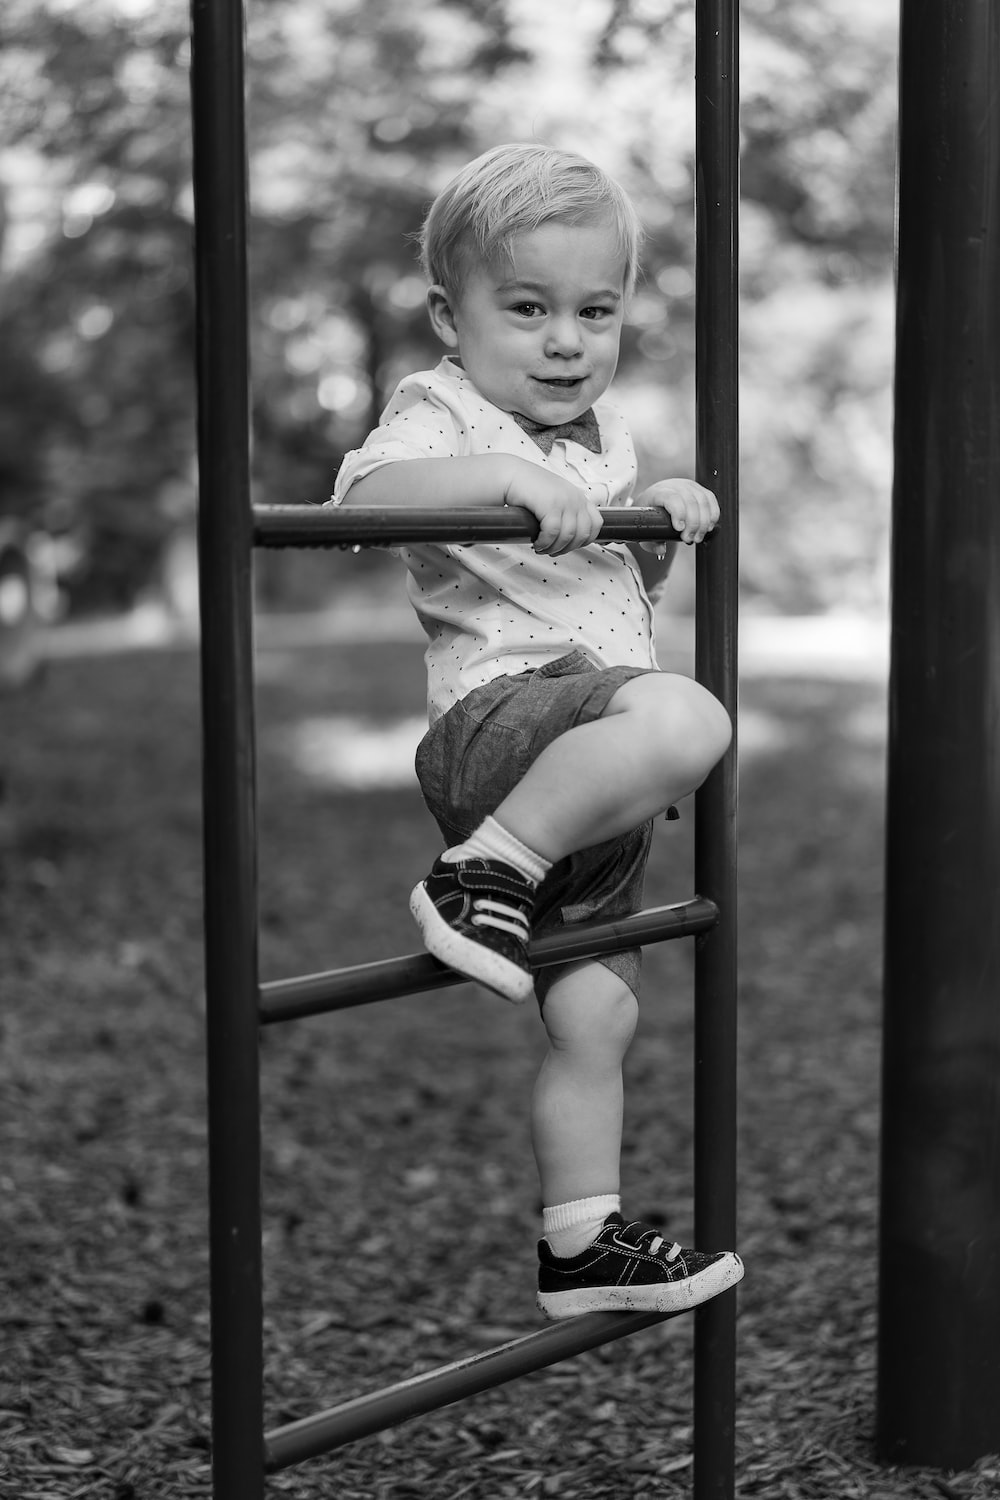 grayscale photo of baby sitting on swing